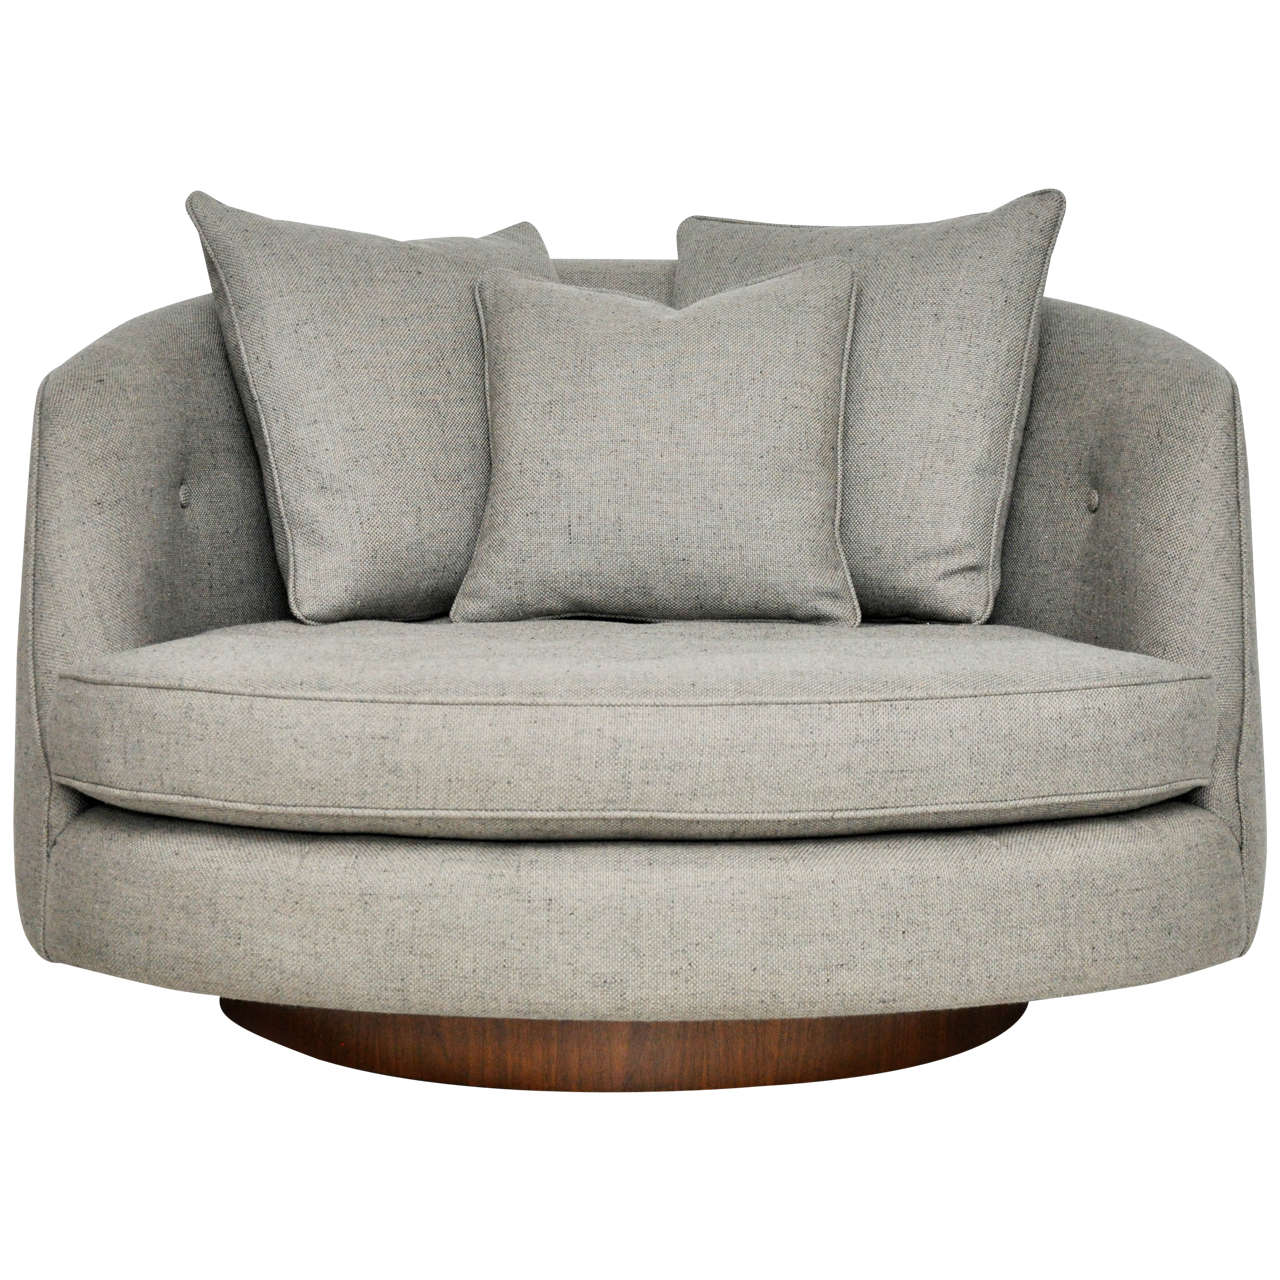 Round Oversized Chair Milo Baughman Large Swivel Chair At 1stdibs